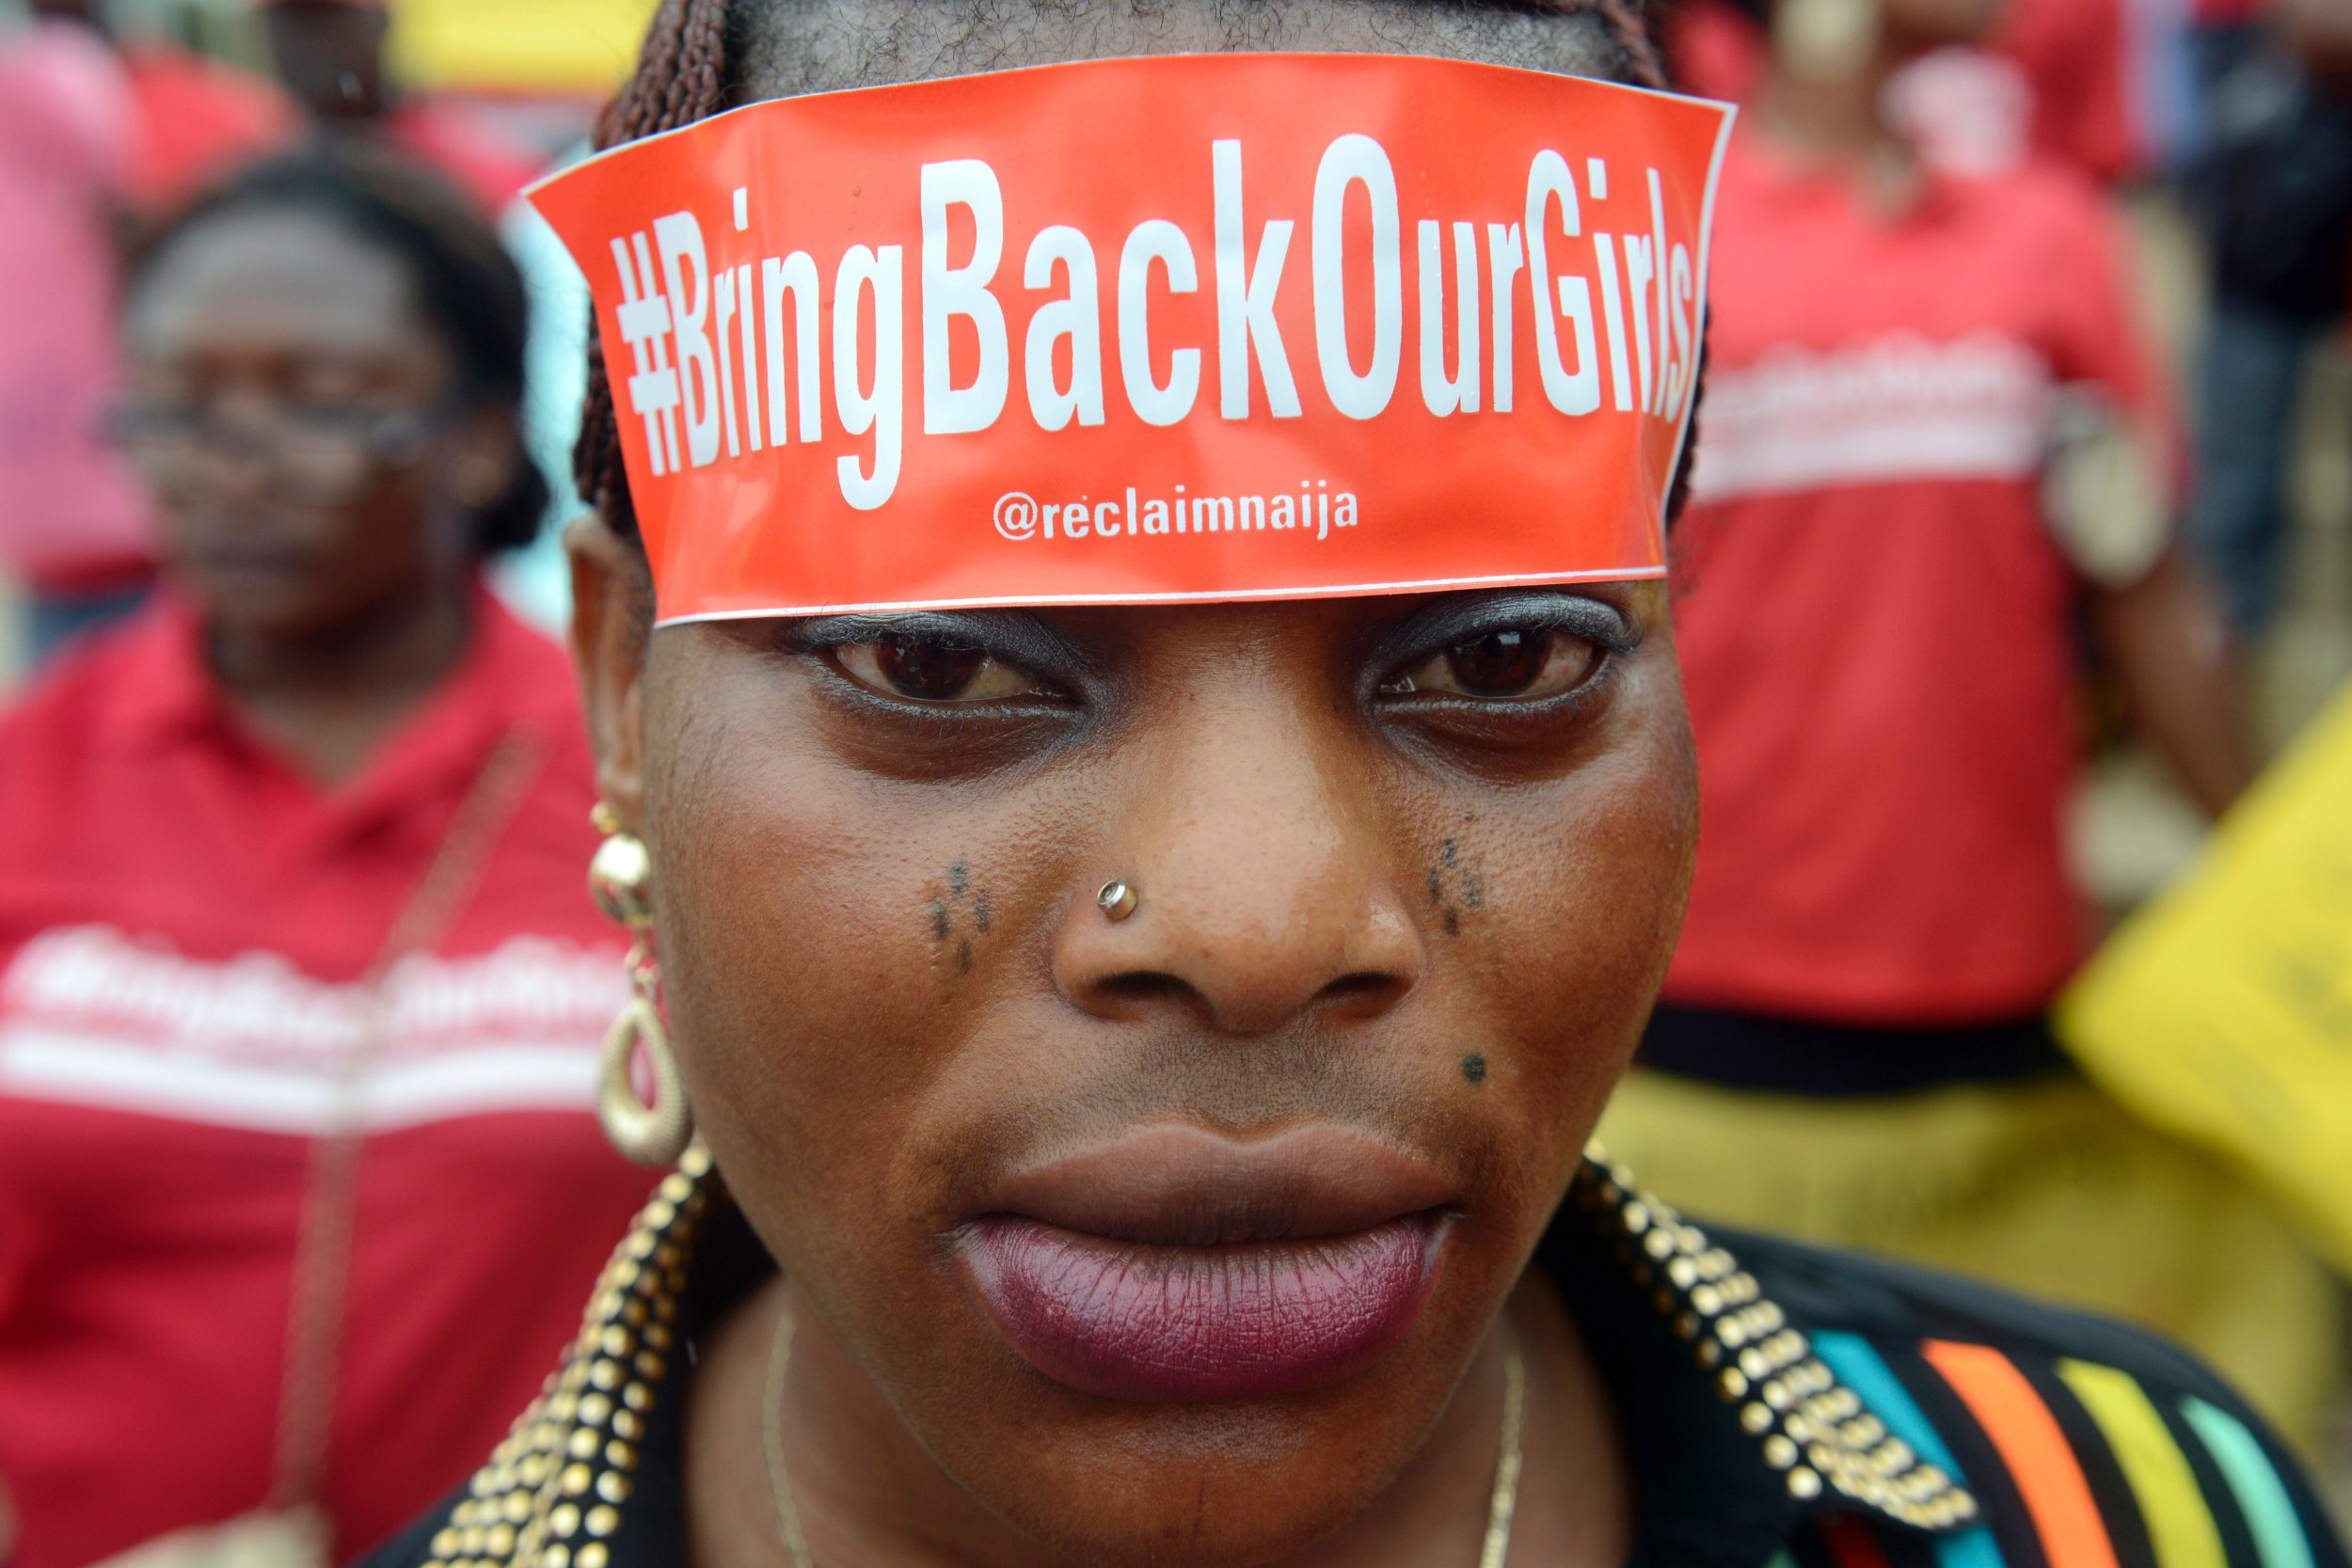 Bring Back Our Girls campaigner